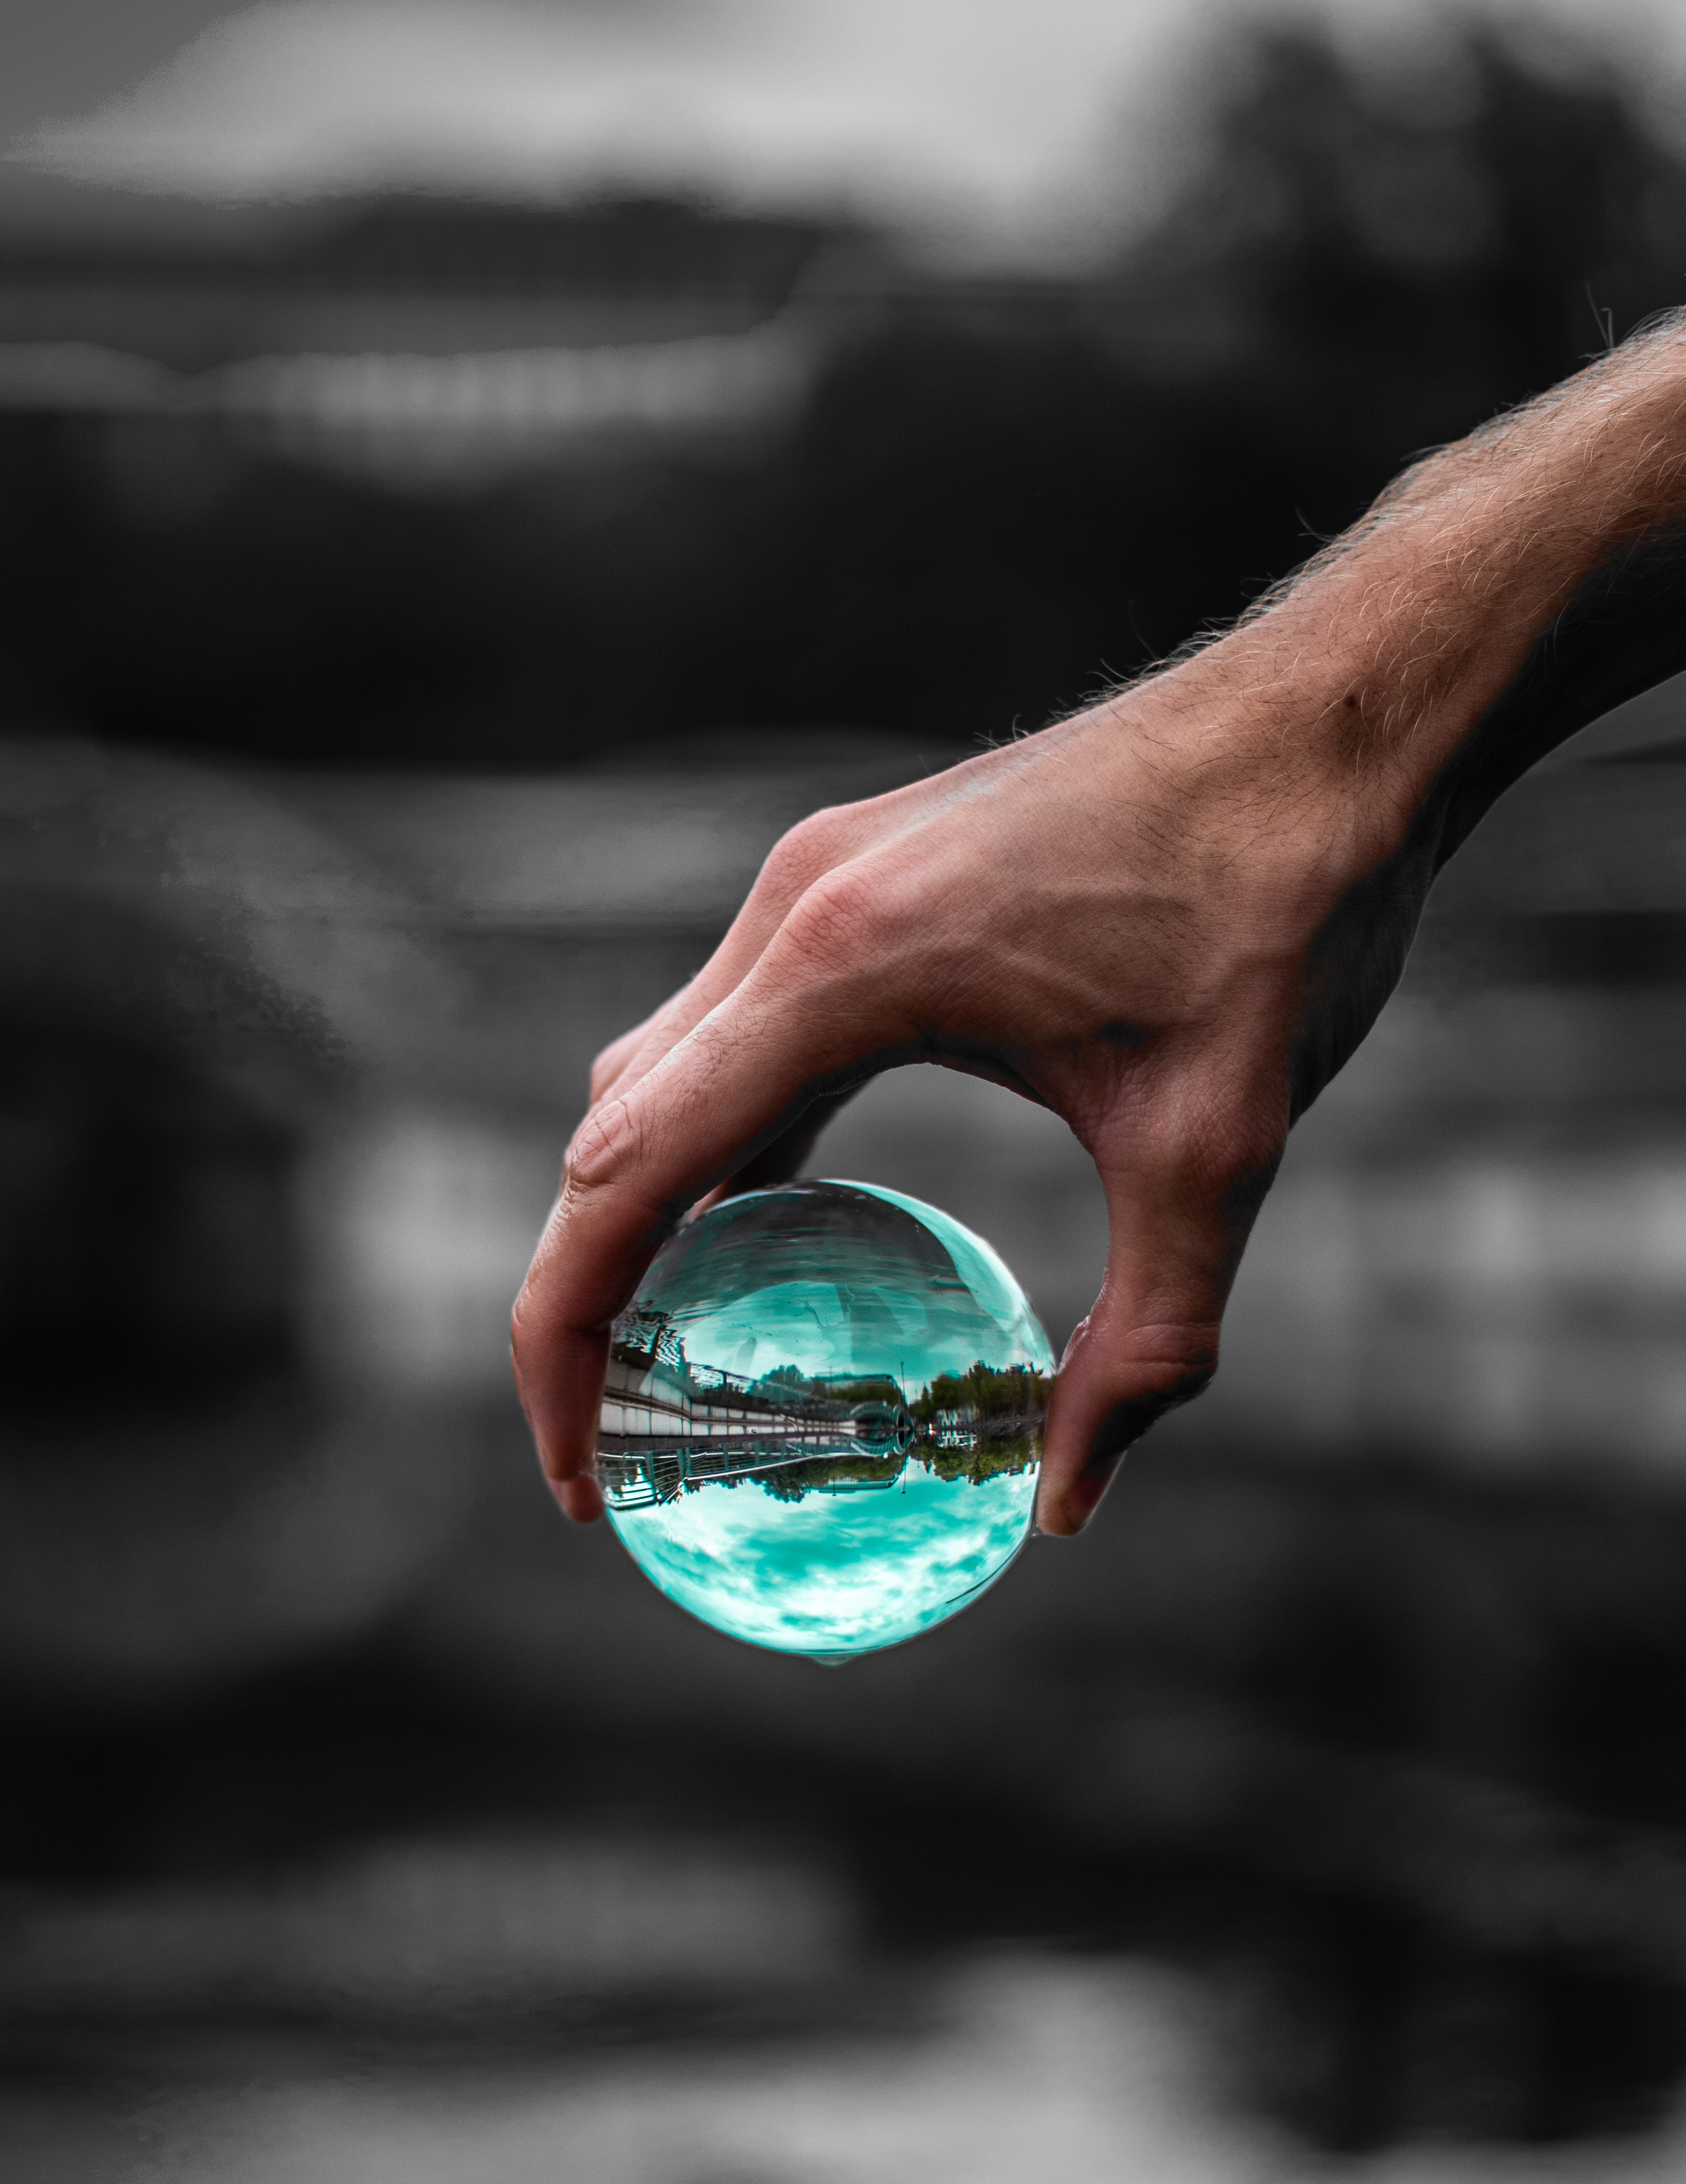 151770 Screensavers and Wallpapers Hand for phone. Download Miscellanea, Miscellaneous, Ball, Glass, Hand, Transparent, Reflection pictures for free